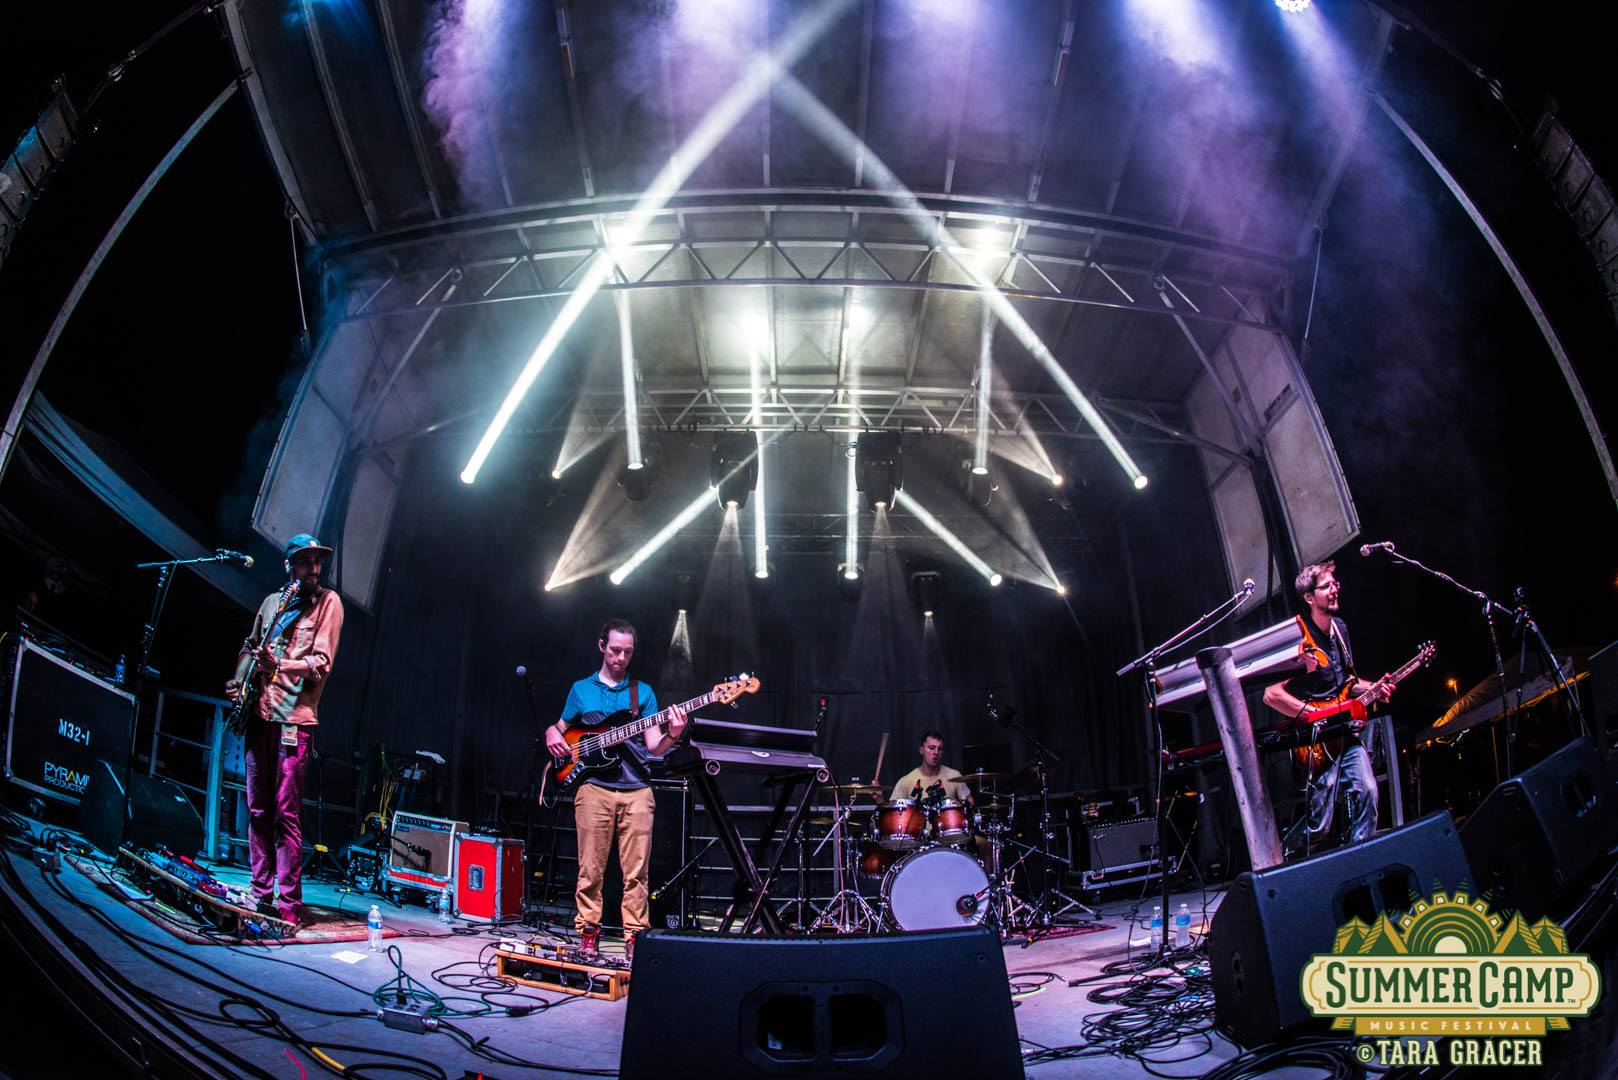 More Than Just Jam: Reflecting on Summer Camp with Aqueous